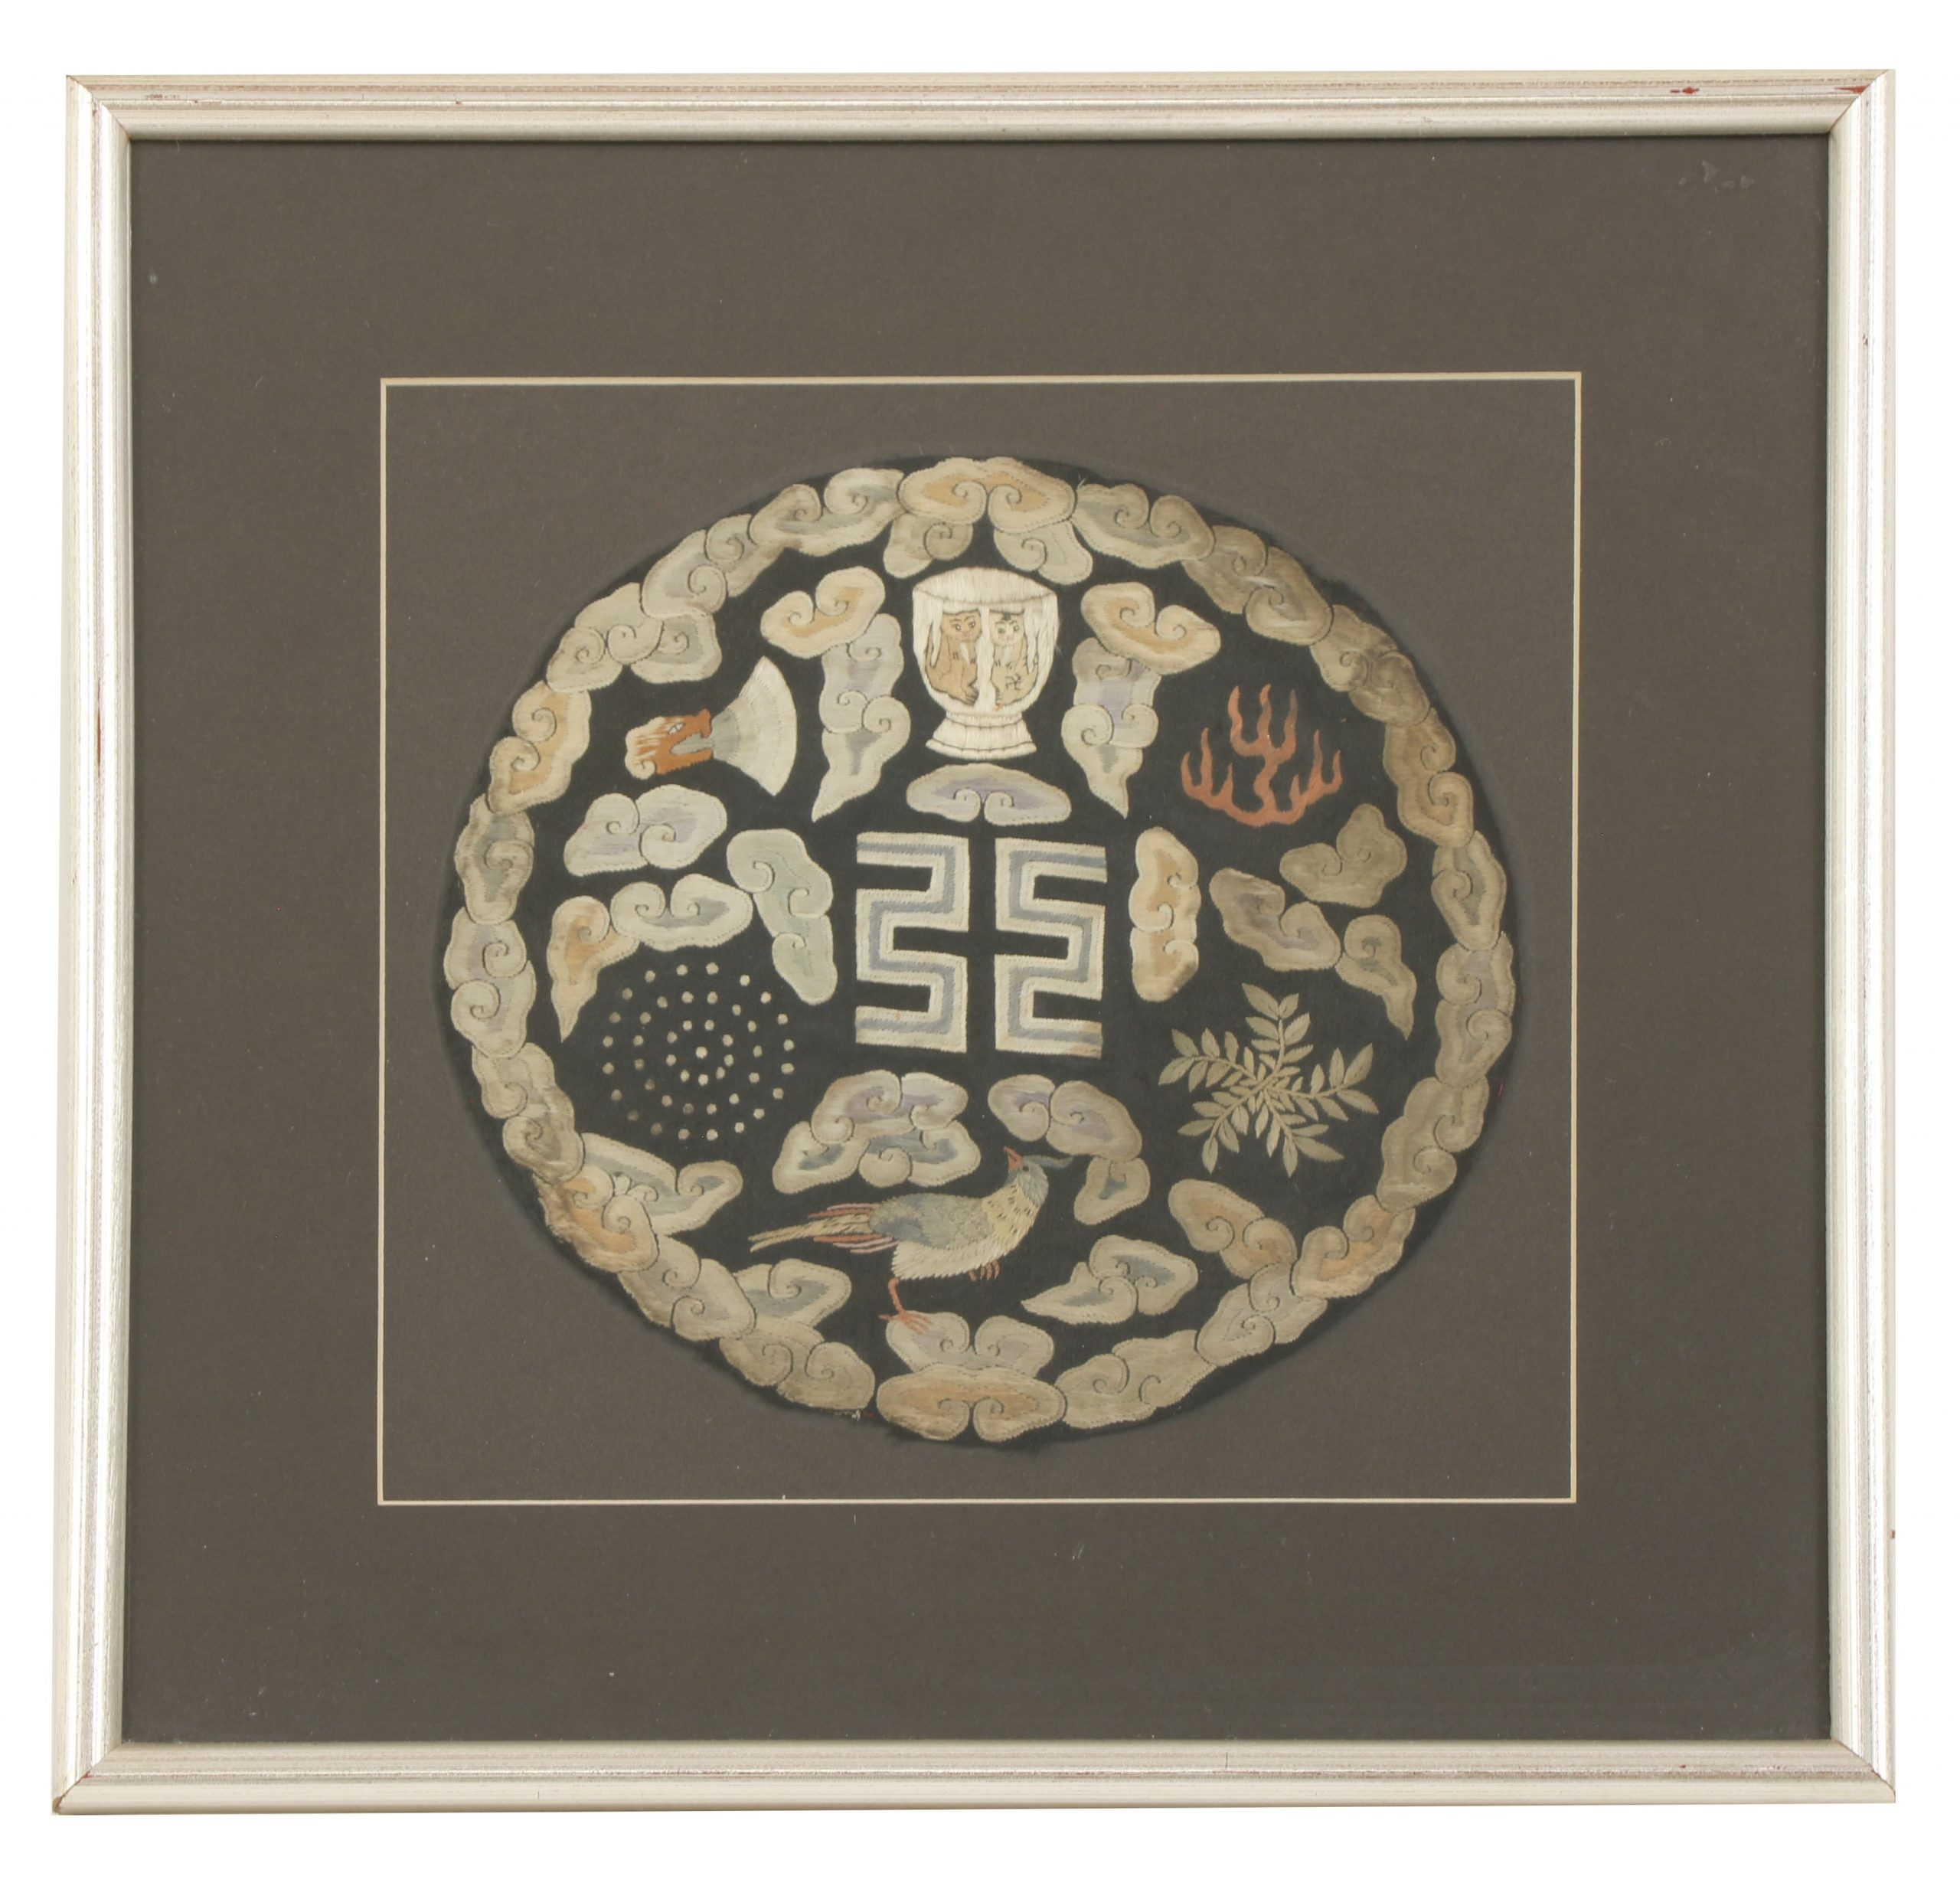 After 1911, of 'Yuan Shikai roundels', each embroidered with the symbols of sovereignty, including the fu surrounded by libation cups, fire, a constellation, a dragon, a mountain, a pheasant, an axe or a water weed, amongst clouds against a black satin ground, 20 to 21cm diameter, framed and glazed (4) After he became the first President of the Chinese Republic in 1912, Yuan Shikai had a desire to emulate the old Imperial ranking system. These roundels were made to be worn by officials during the traditional seasonal sacrifices he reinstated. The lower the status of the official, the fewer roundels on his robe, and the fewer traditional symbols of Imperial authority included in the roundel, with twelve being the highest number for roundels and symbols. For further examples of roundels of this type, displaying a varying numbers of symbols, see B Jackson and D Hughes, 'Ladder to the Clouds', Berkeley, 1999, pp. 286-9. Provenance: Two purchased from Christie's, New York, 19 Mar 2008, Lot 81. 民国 补子 一组四件